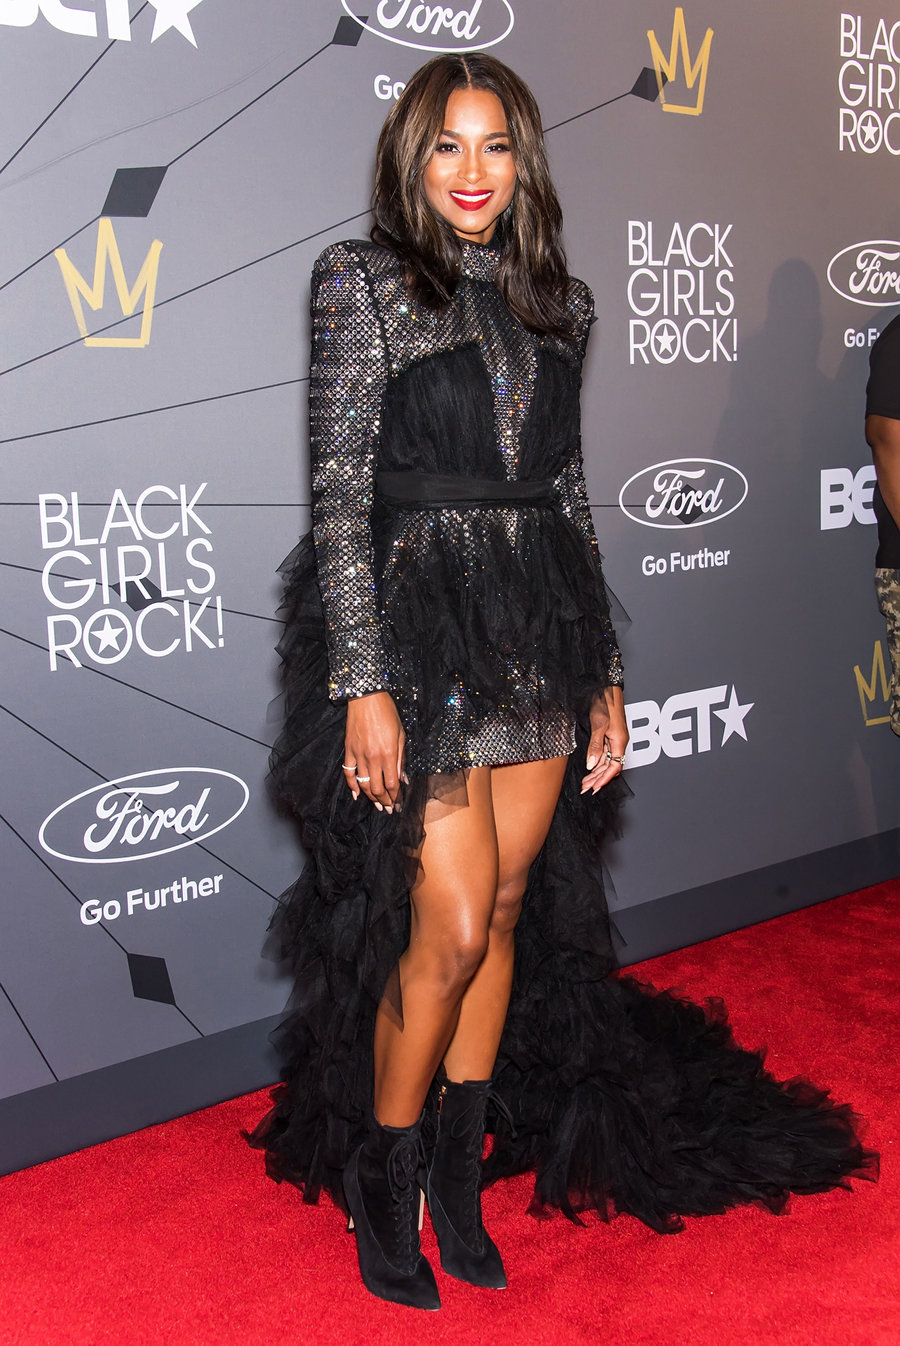 ciara-black-girls-rock-red-carpet-2018-billboard-1240